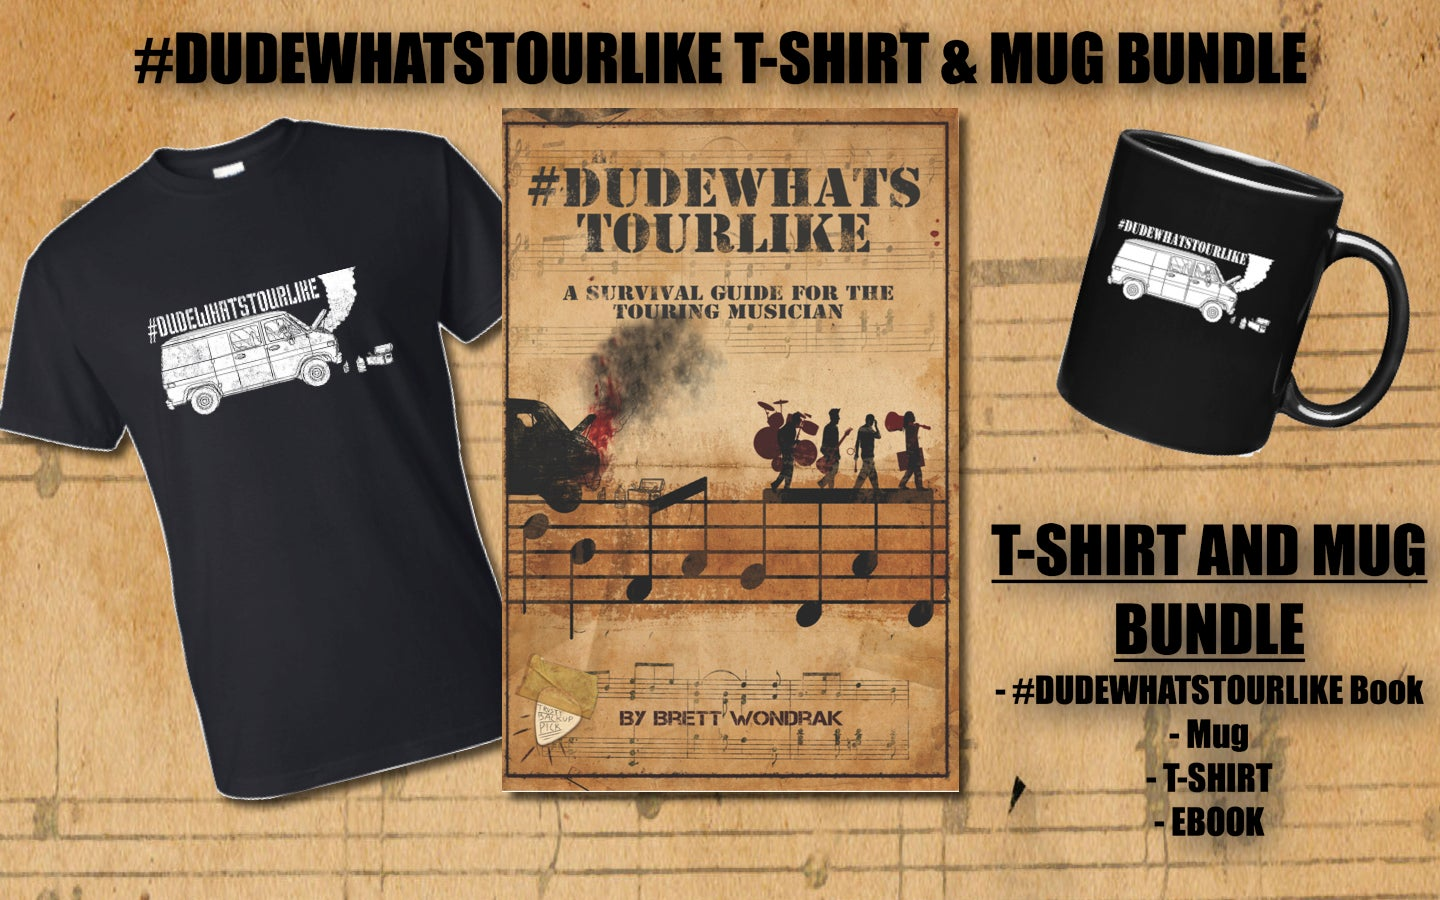 Image of T-Shirt & Mug Preorder